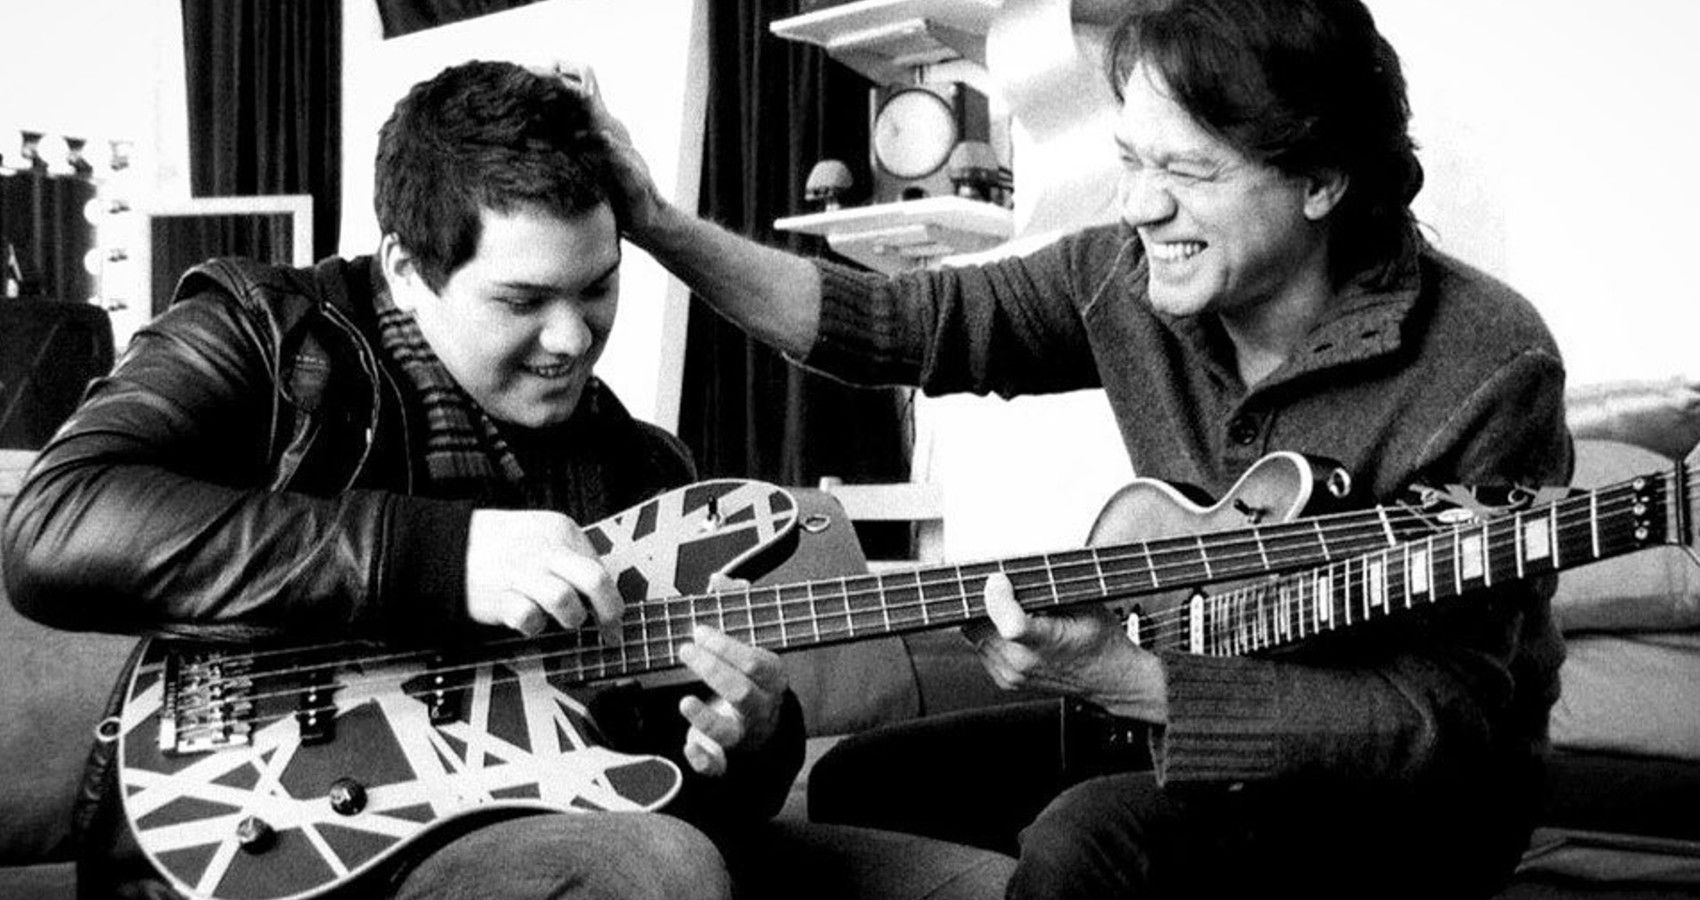 Eddie Van Halen's Son Shares Sweet Throwback Picture Days Following His Dad's Passing